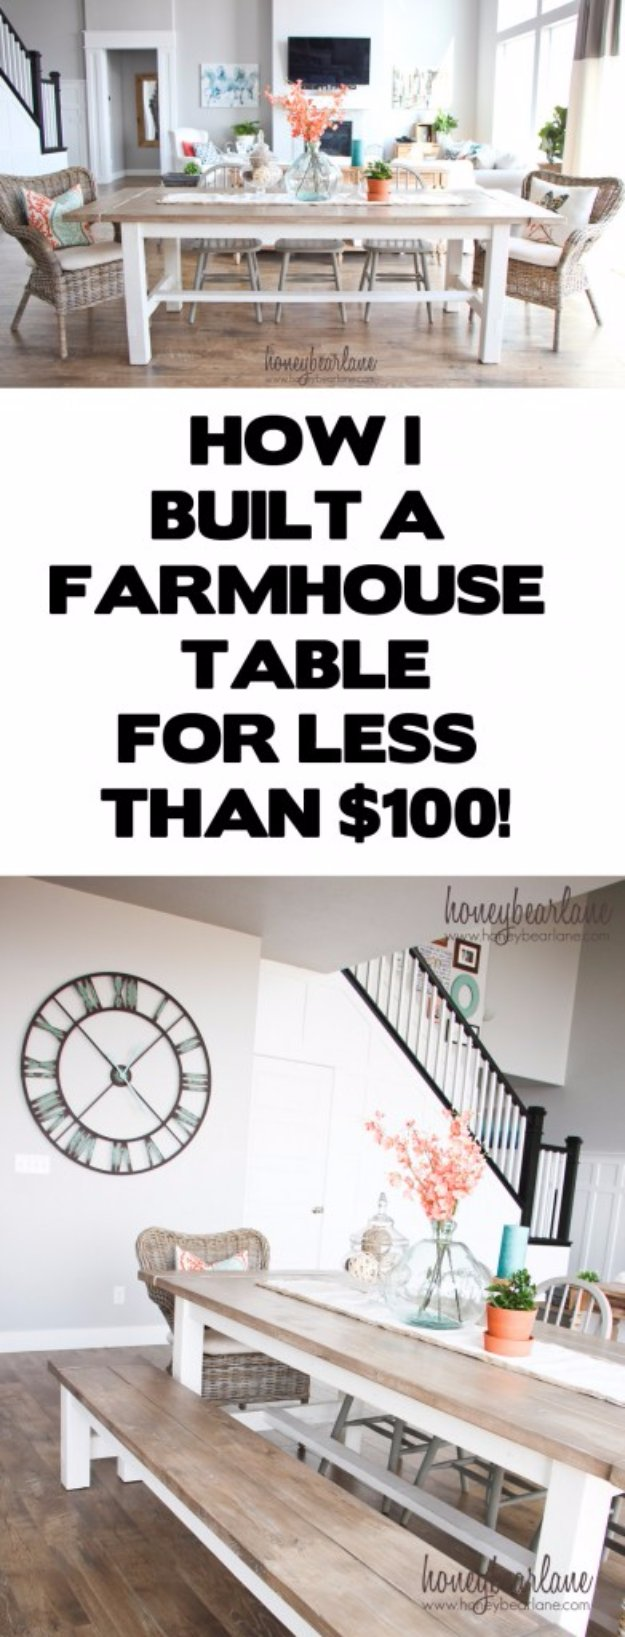 DIY Dining Room Decor Ideas   DIY Farmhouse Table And Bench   Cool DIY  Projects For